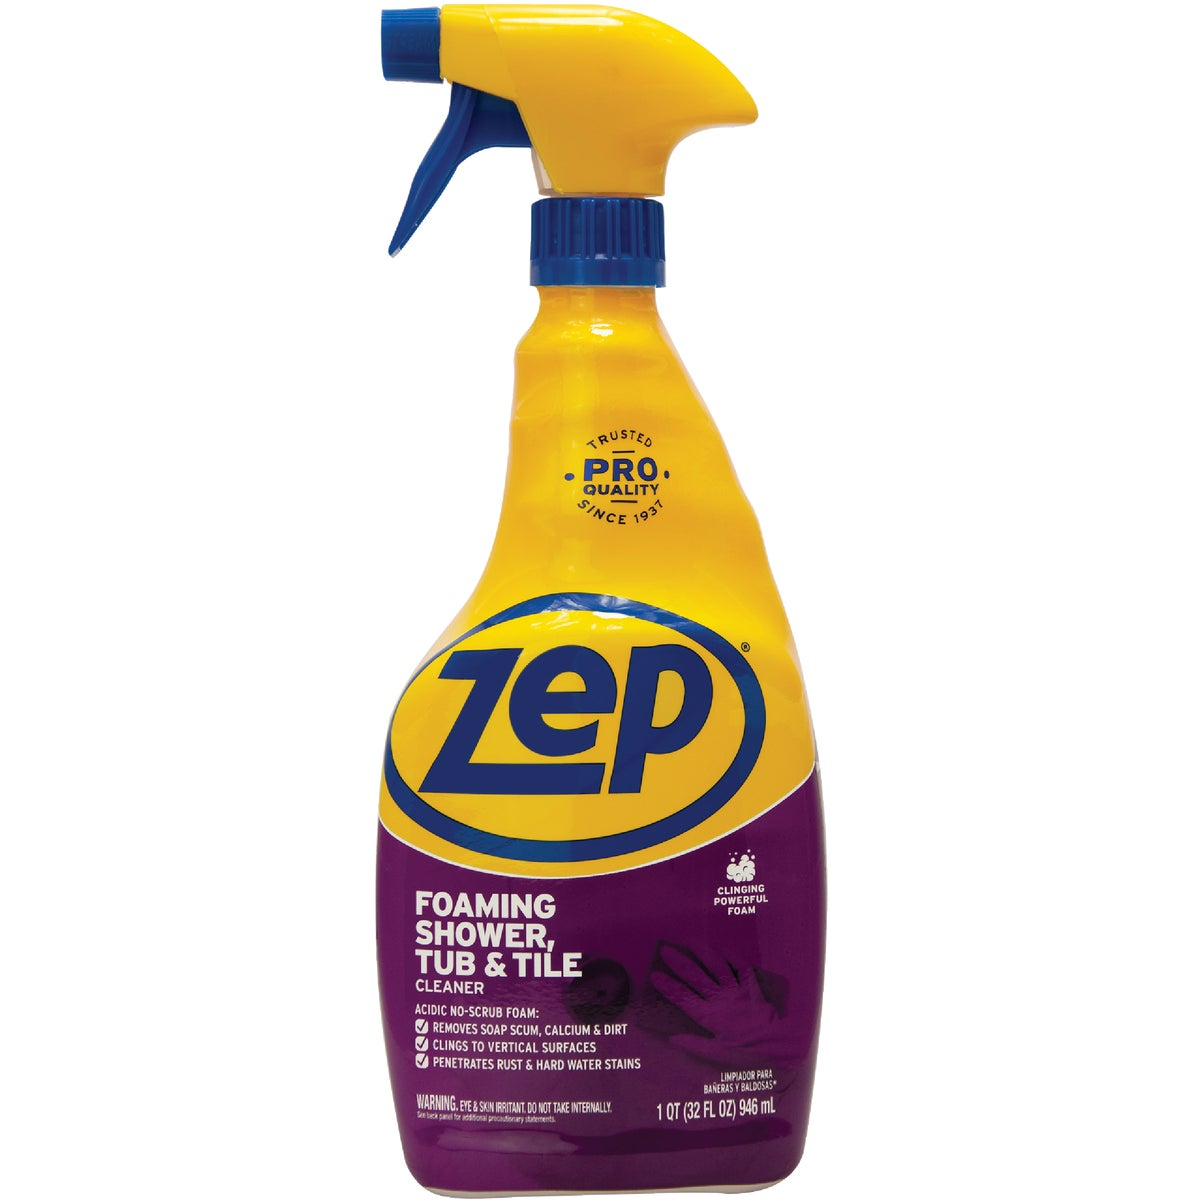 Zep PowerFoam Tub & Tile Cleaner, ZUPFTT32